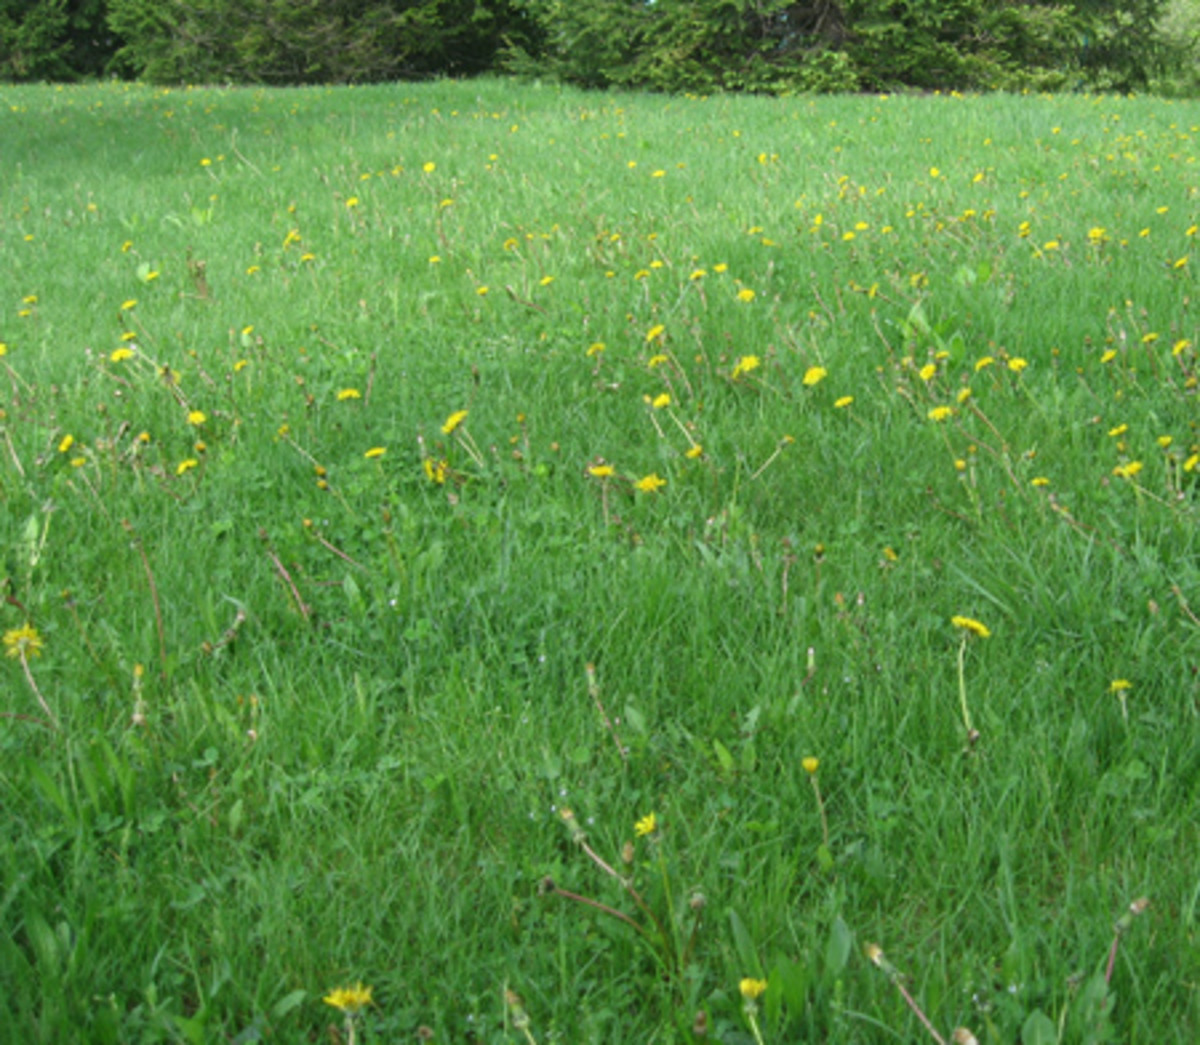 Freedom Lawn in Pennsylvania (Photo courtesy by Sustainable Gardener from Flickr.com)